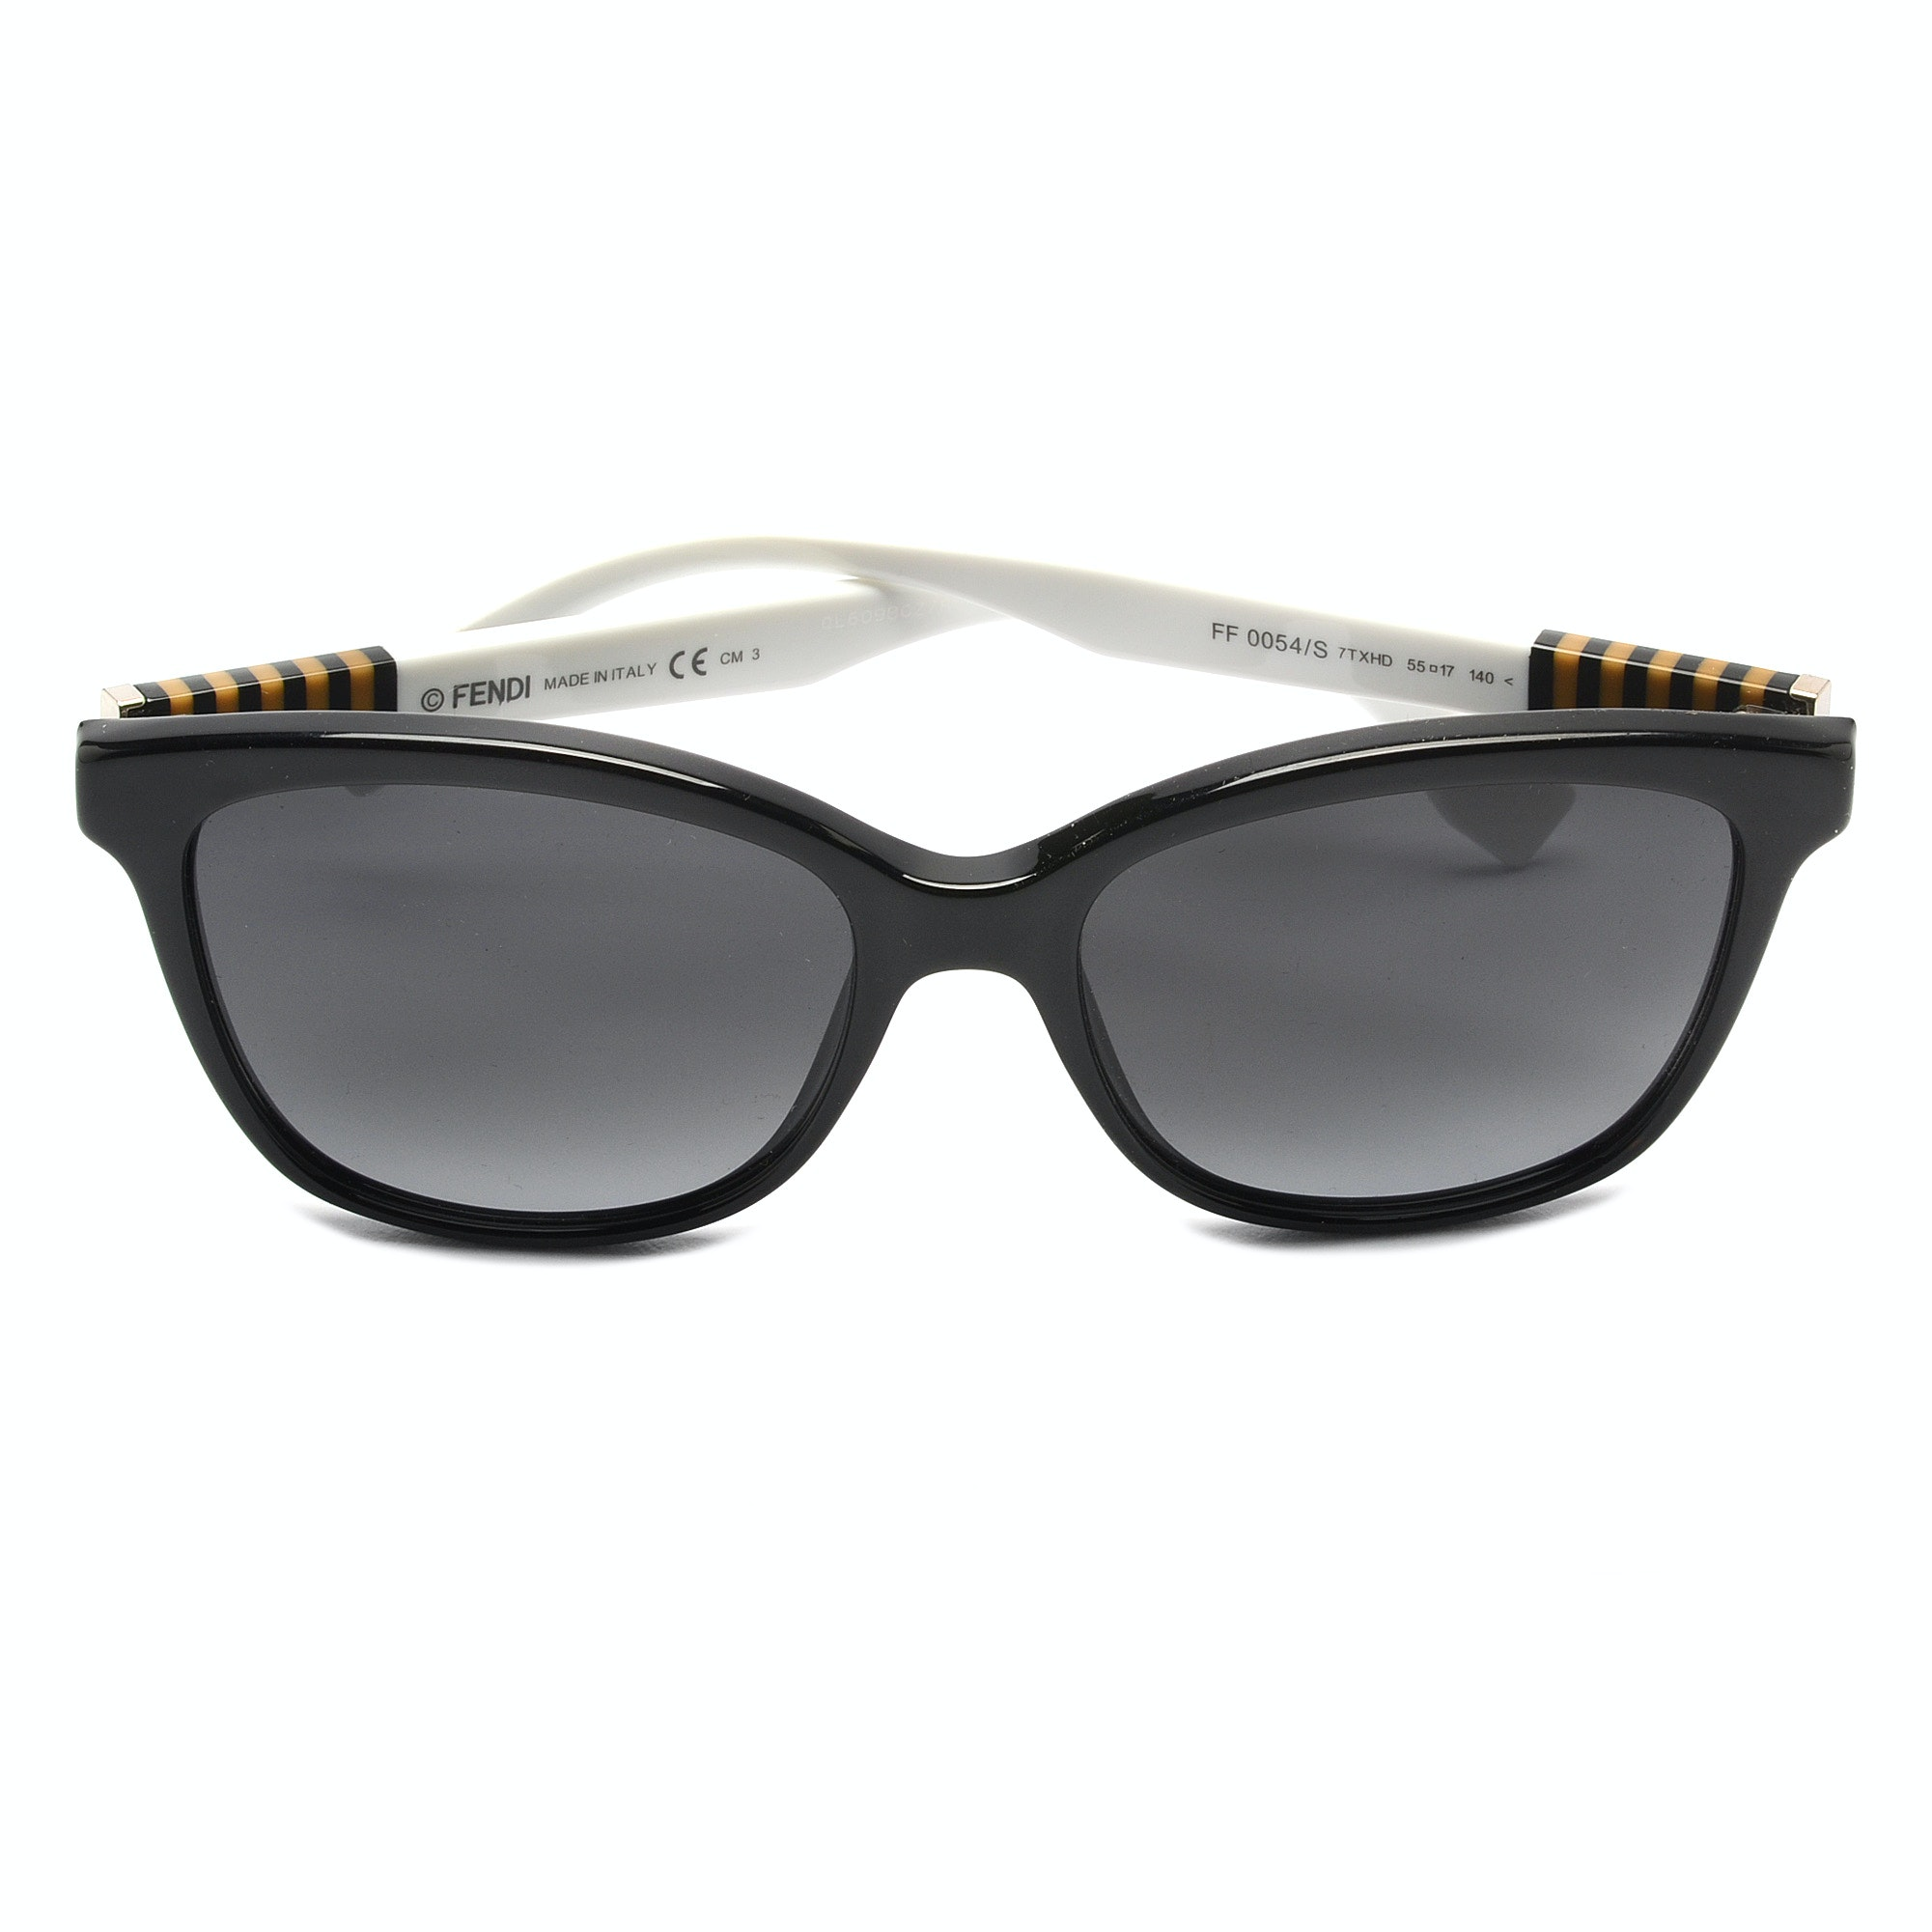 Fendi FF 0054/S Sunglasses